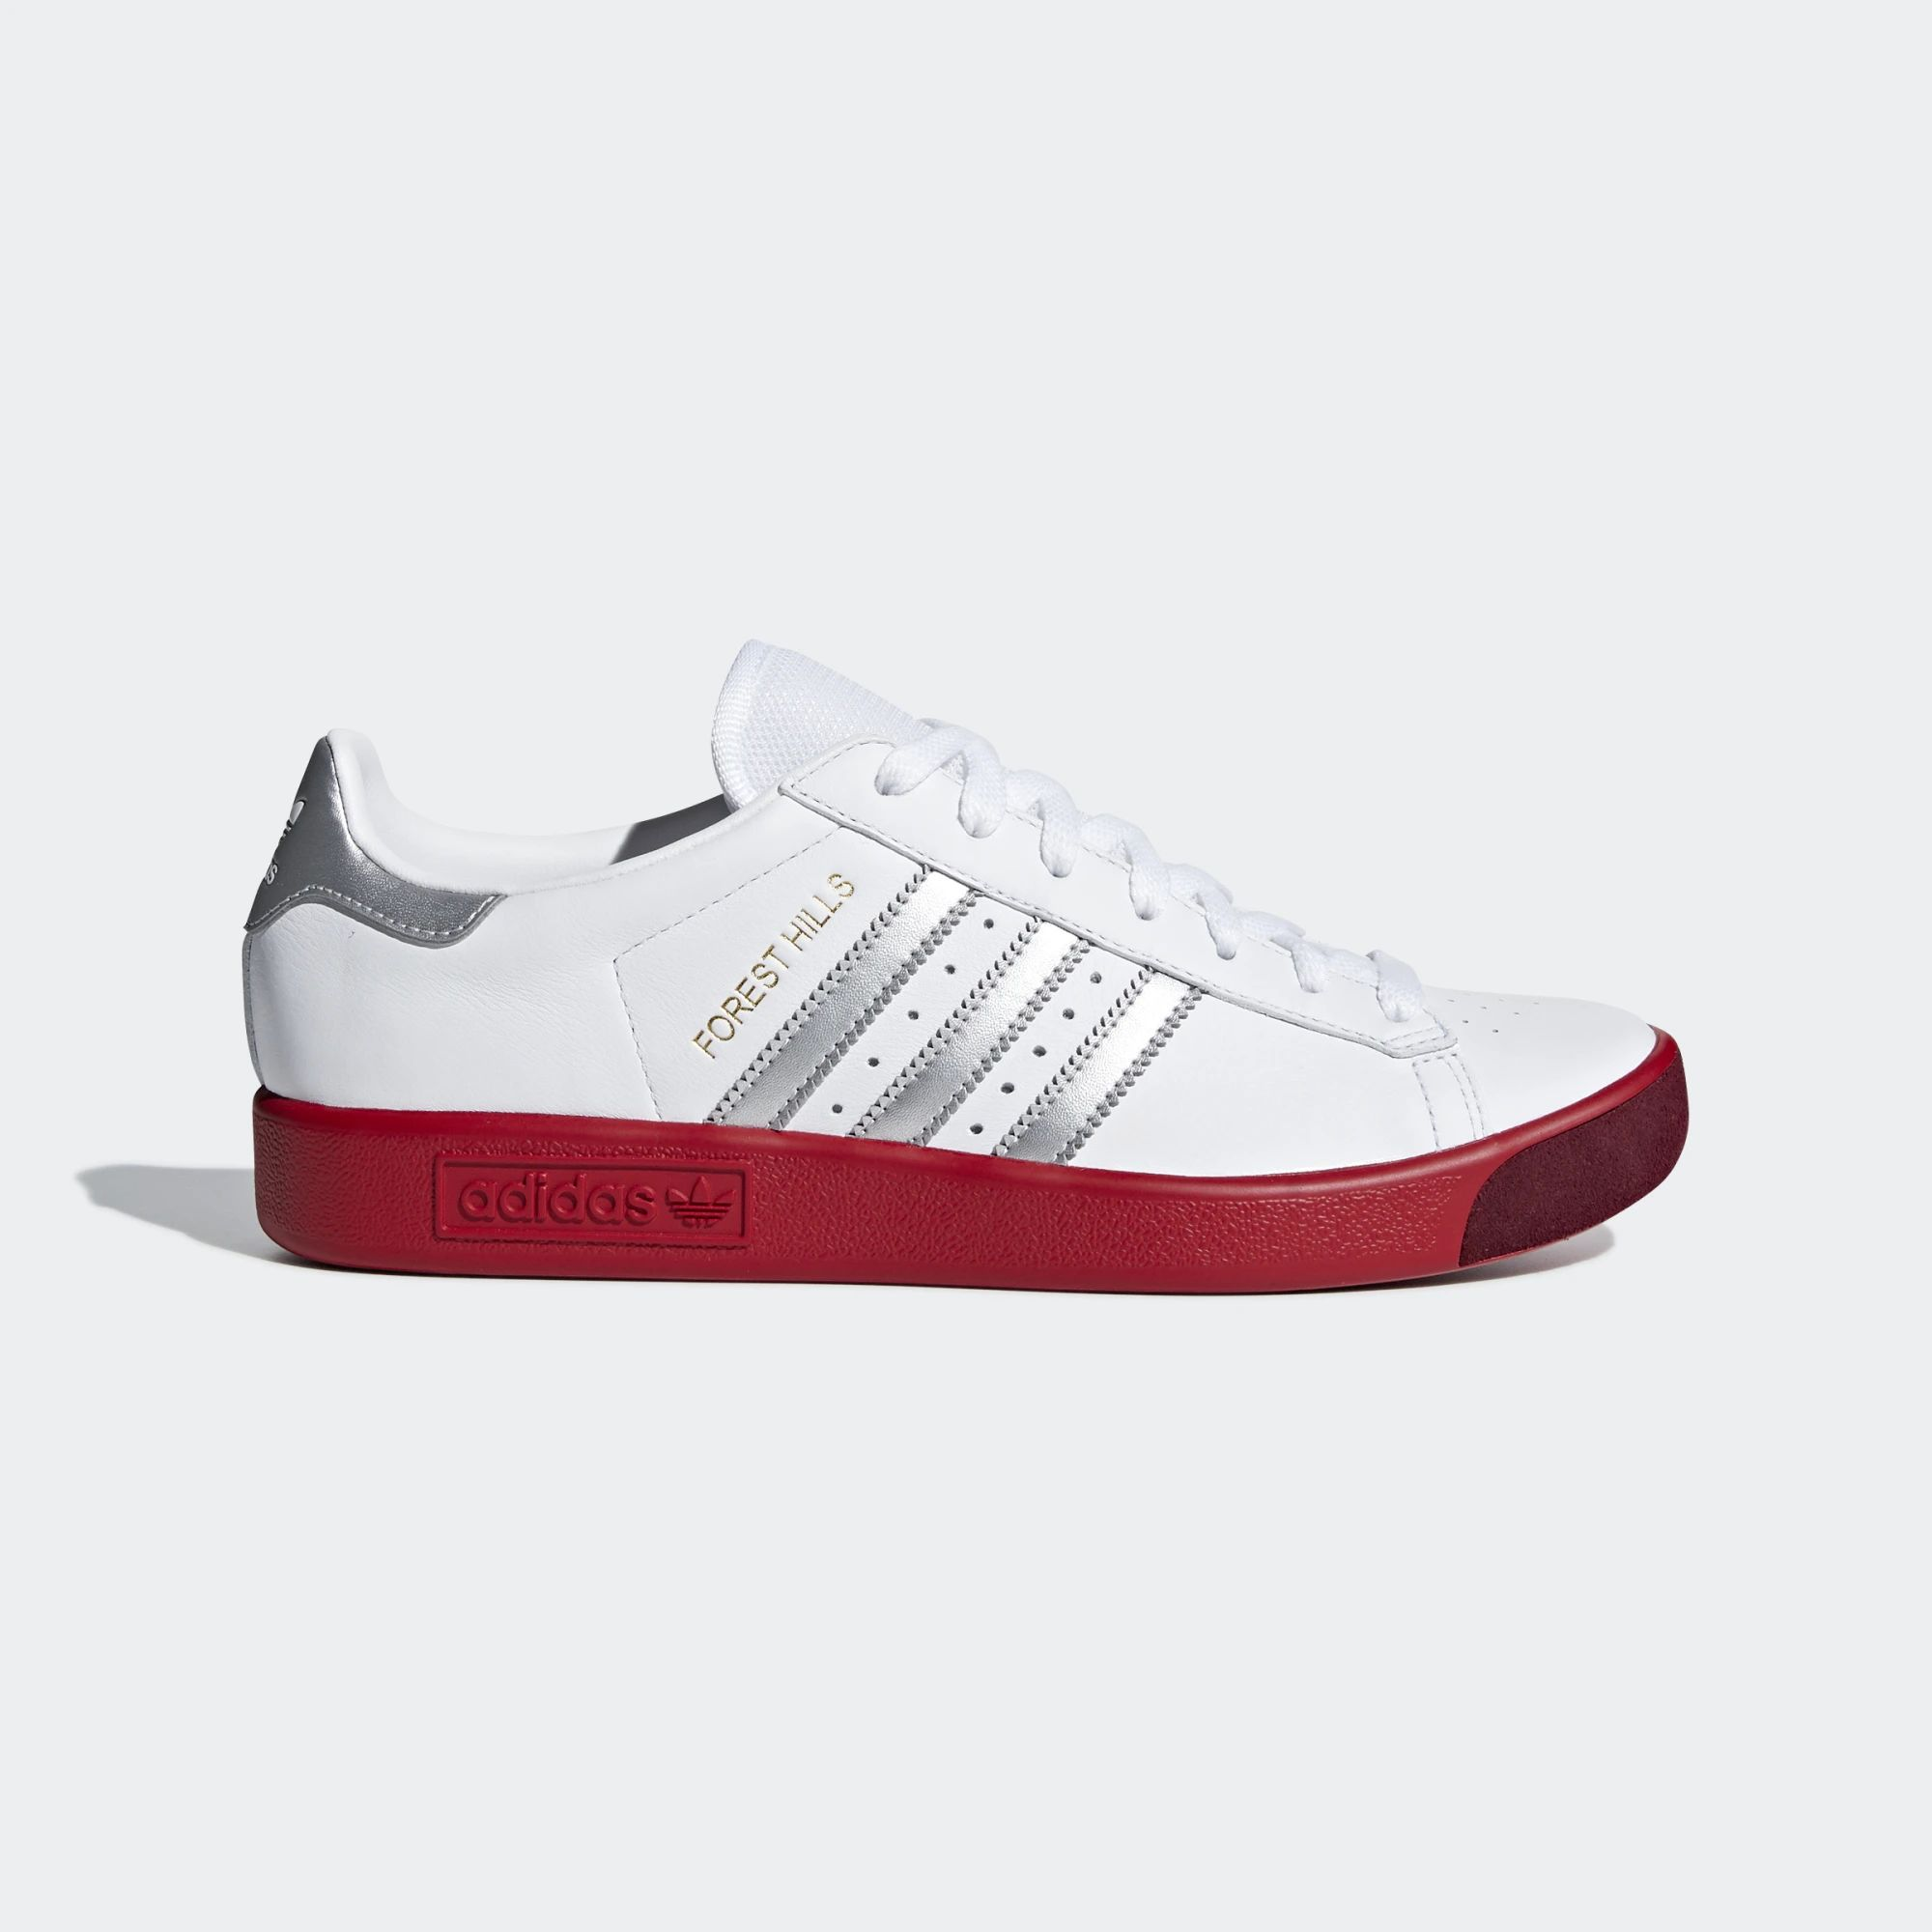 the best attitude 378b3 4b24e Adidas Forest Hills Shoes - Ftwr White  Silver Met  Scarlet